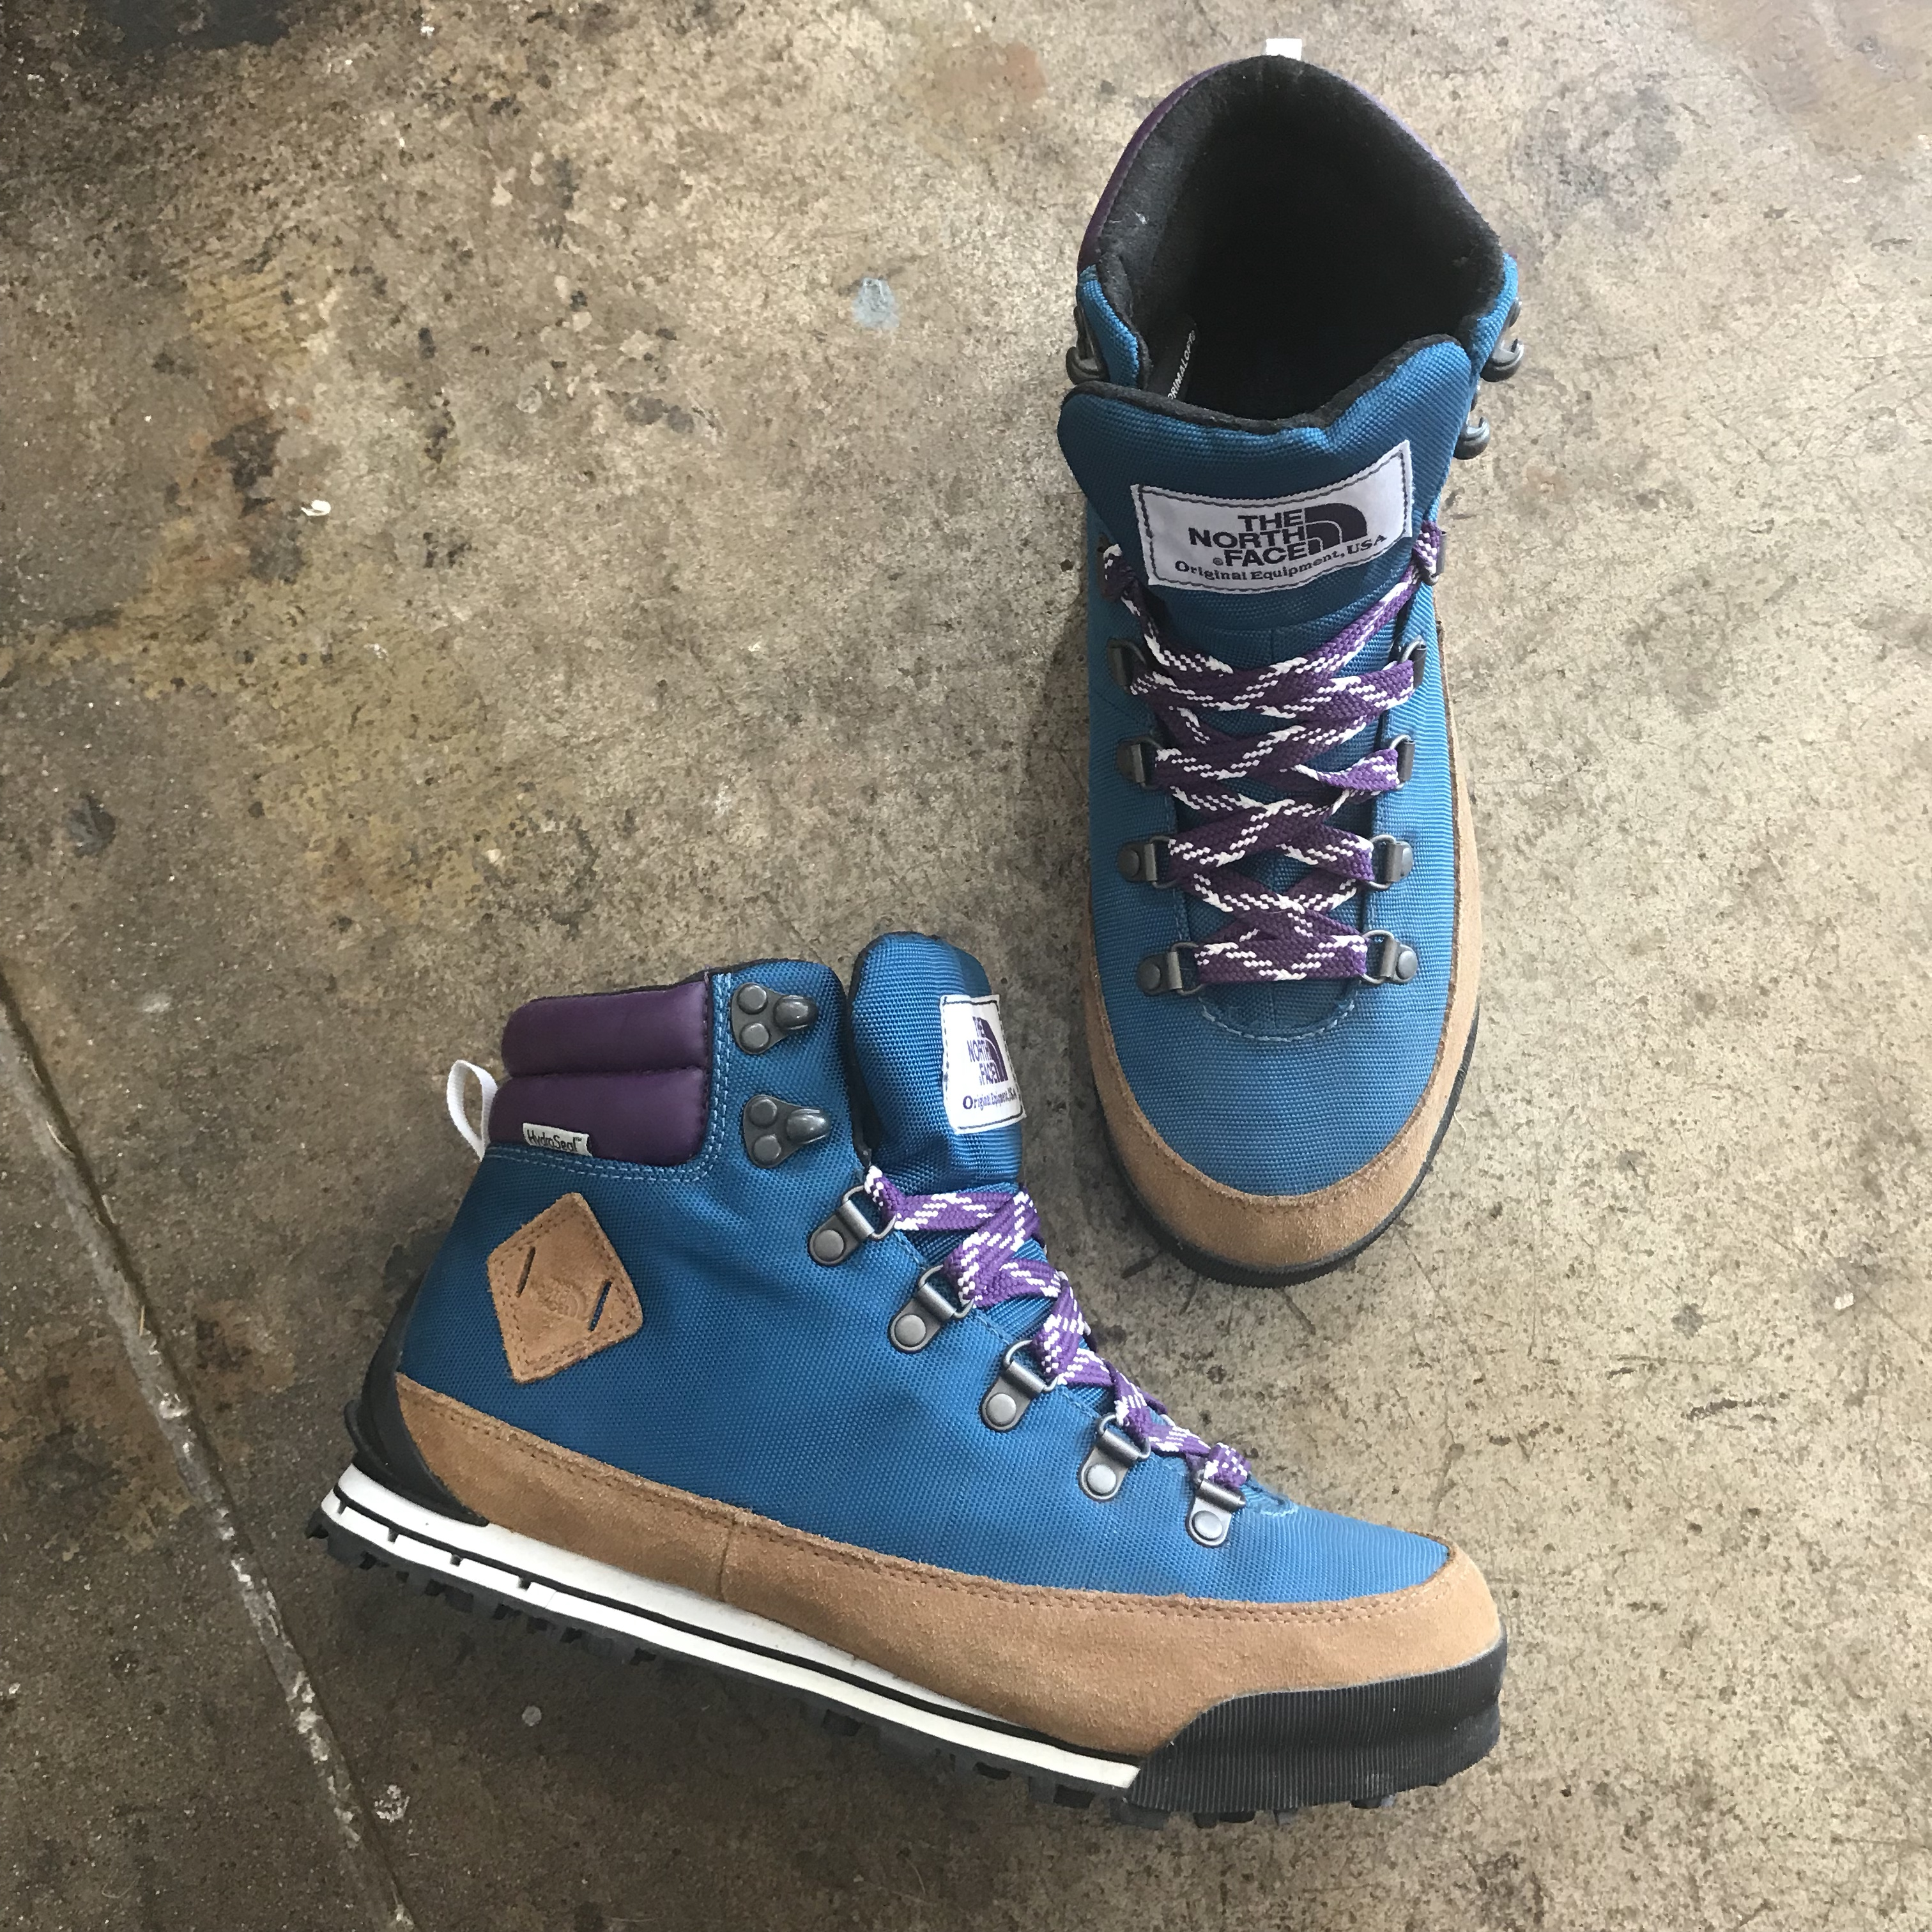 The North Face Purple Label trail boots